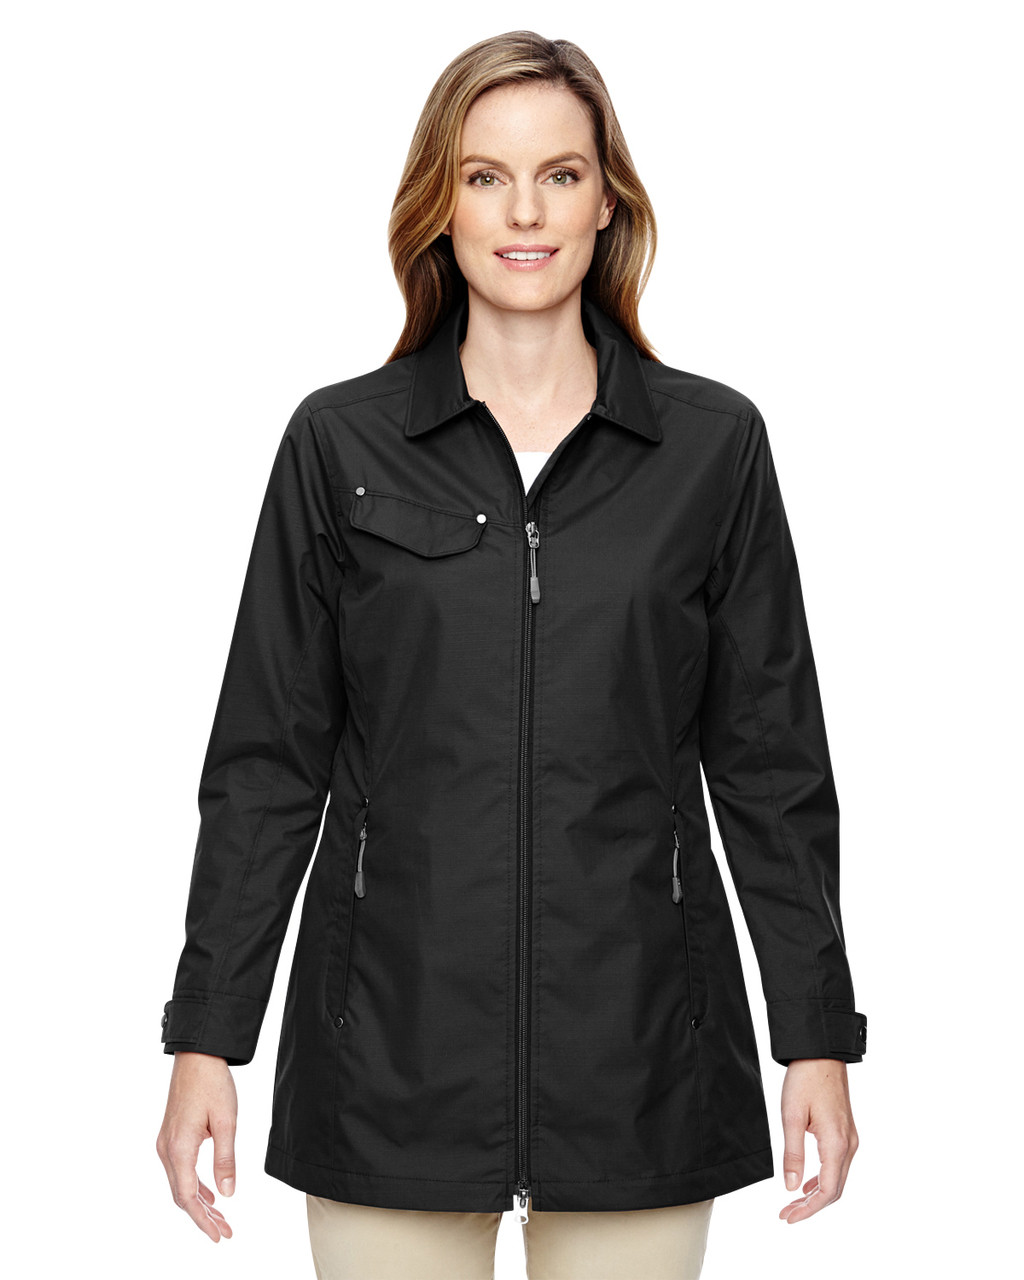 Black 78218 North End Excursion Ambassador Lightweight Jacket with Fold Down Collar | Blankclothing.ca